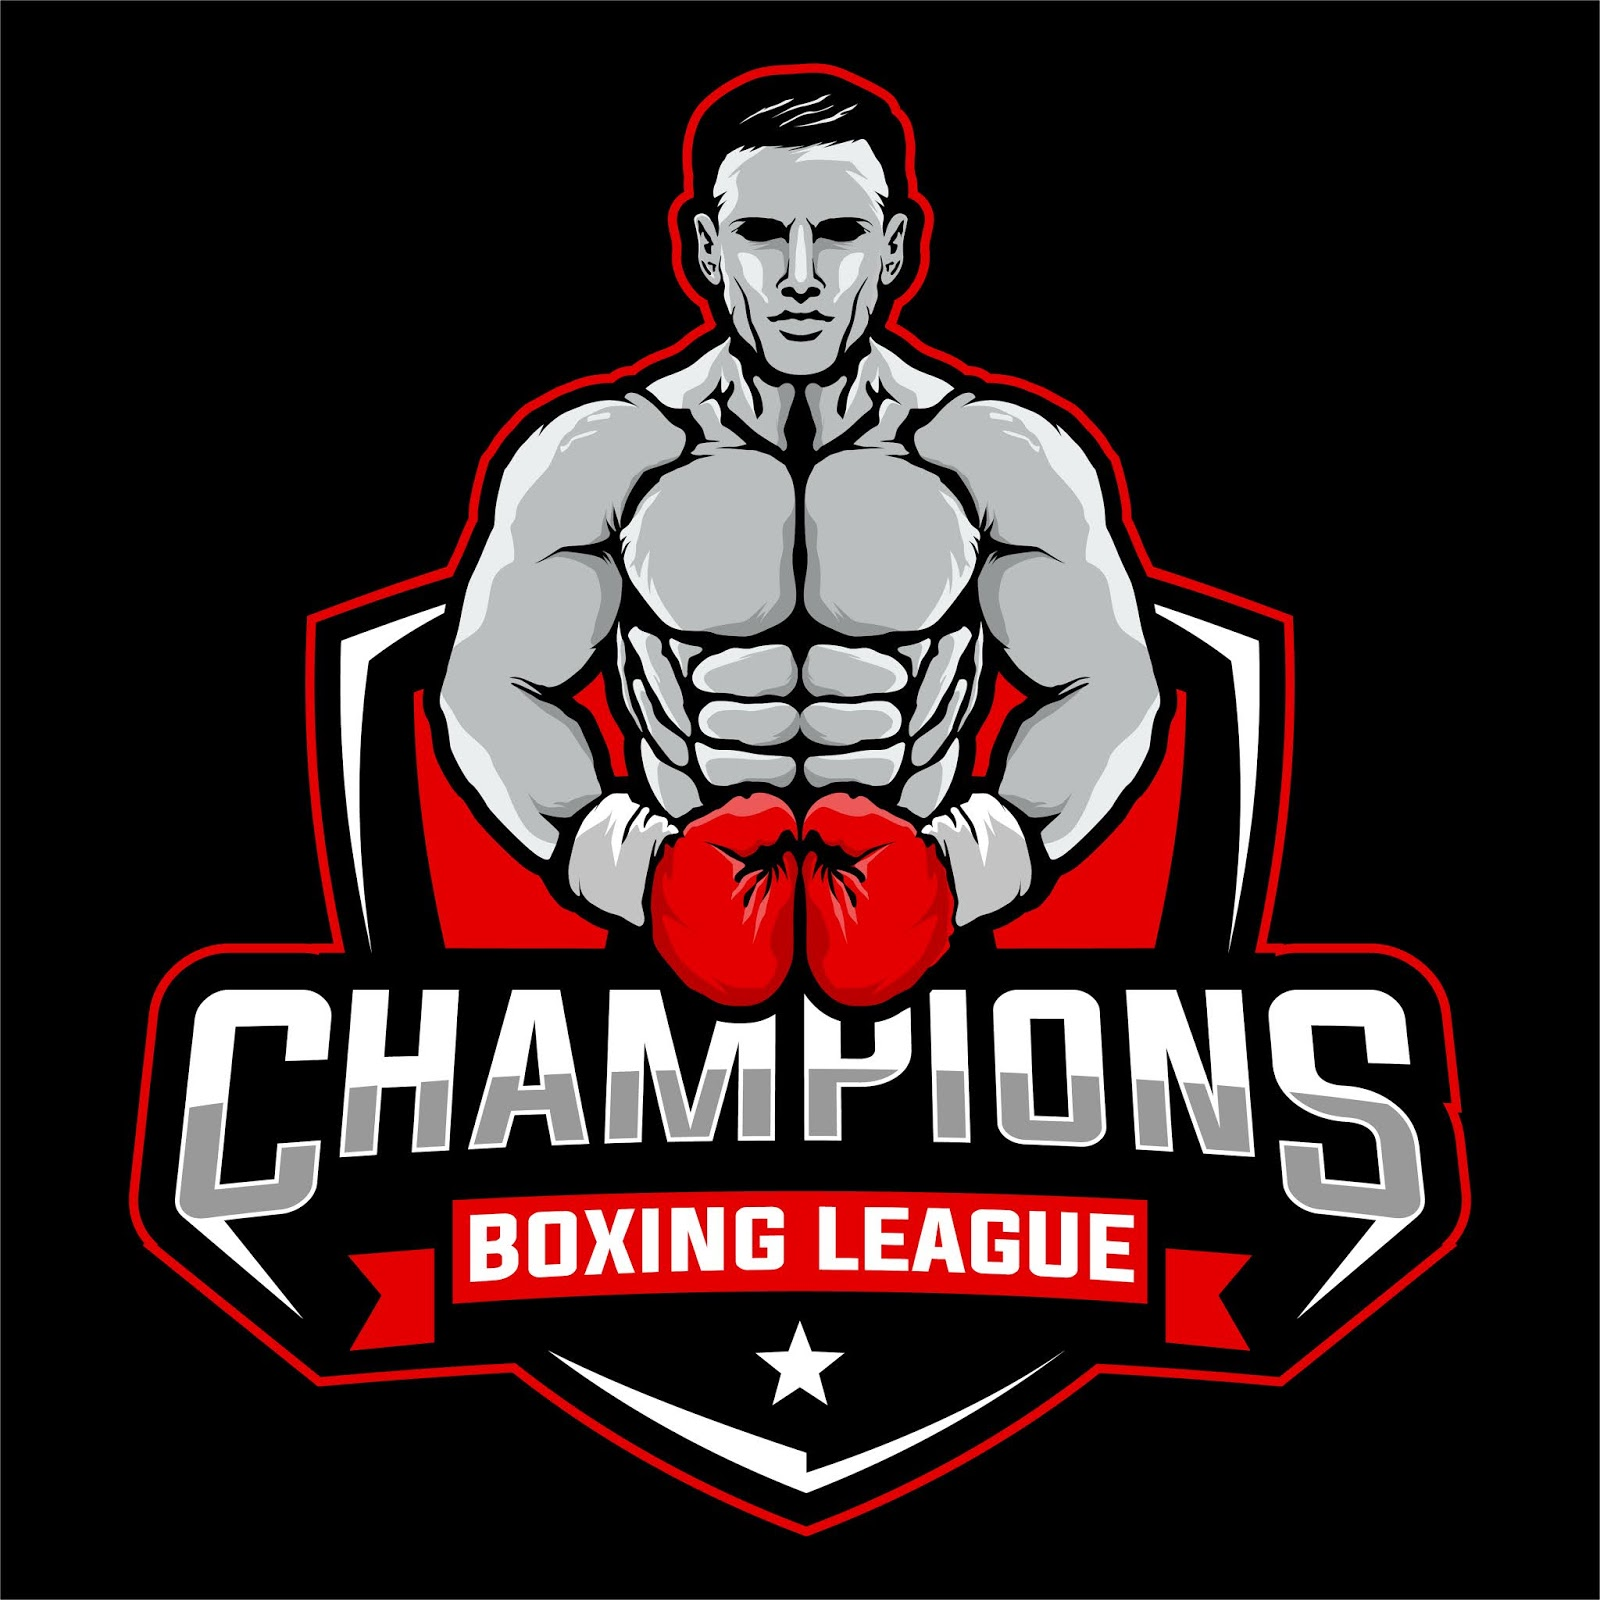 Boxing League Free Download Vector CDR, AI, EPS and PNG Formats